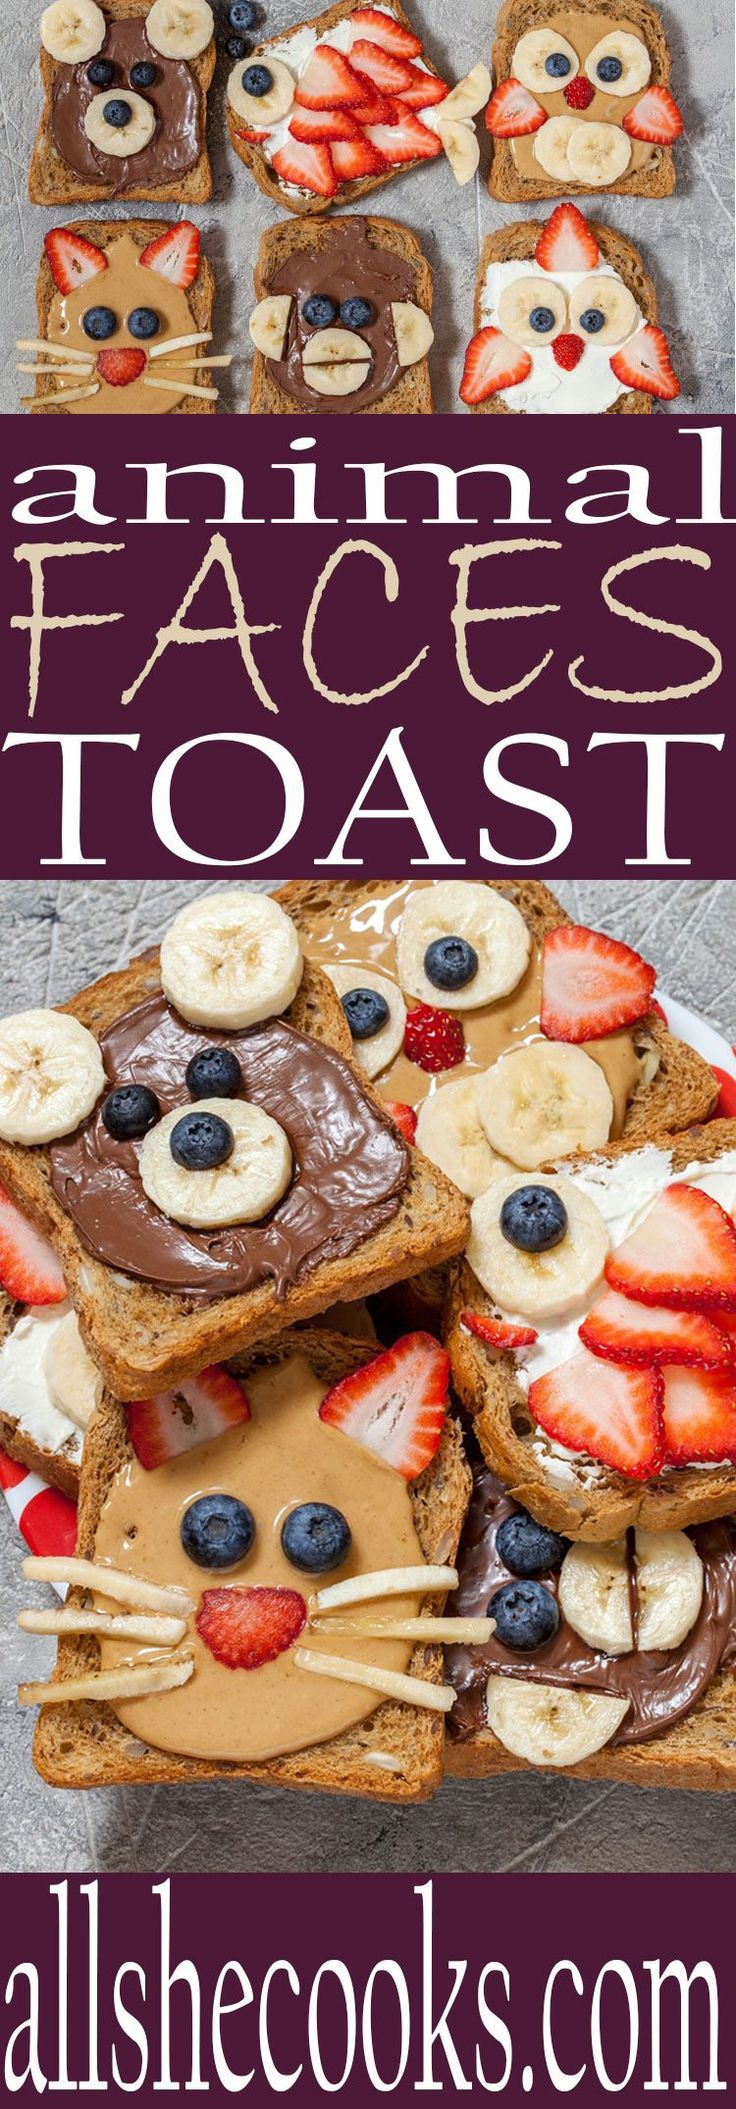 Making food fun for kids is easy with these animal faces toast ideas.